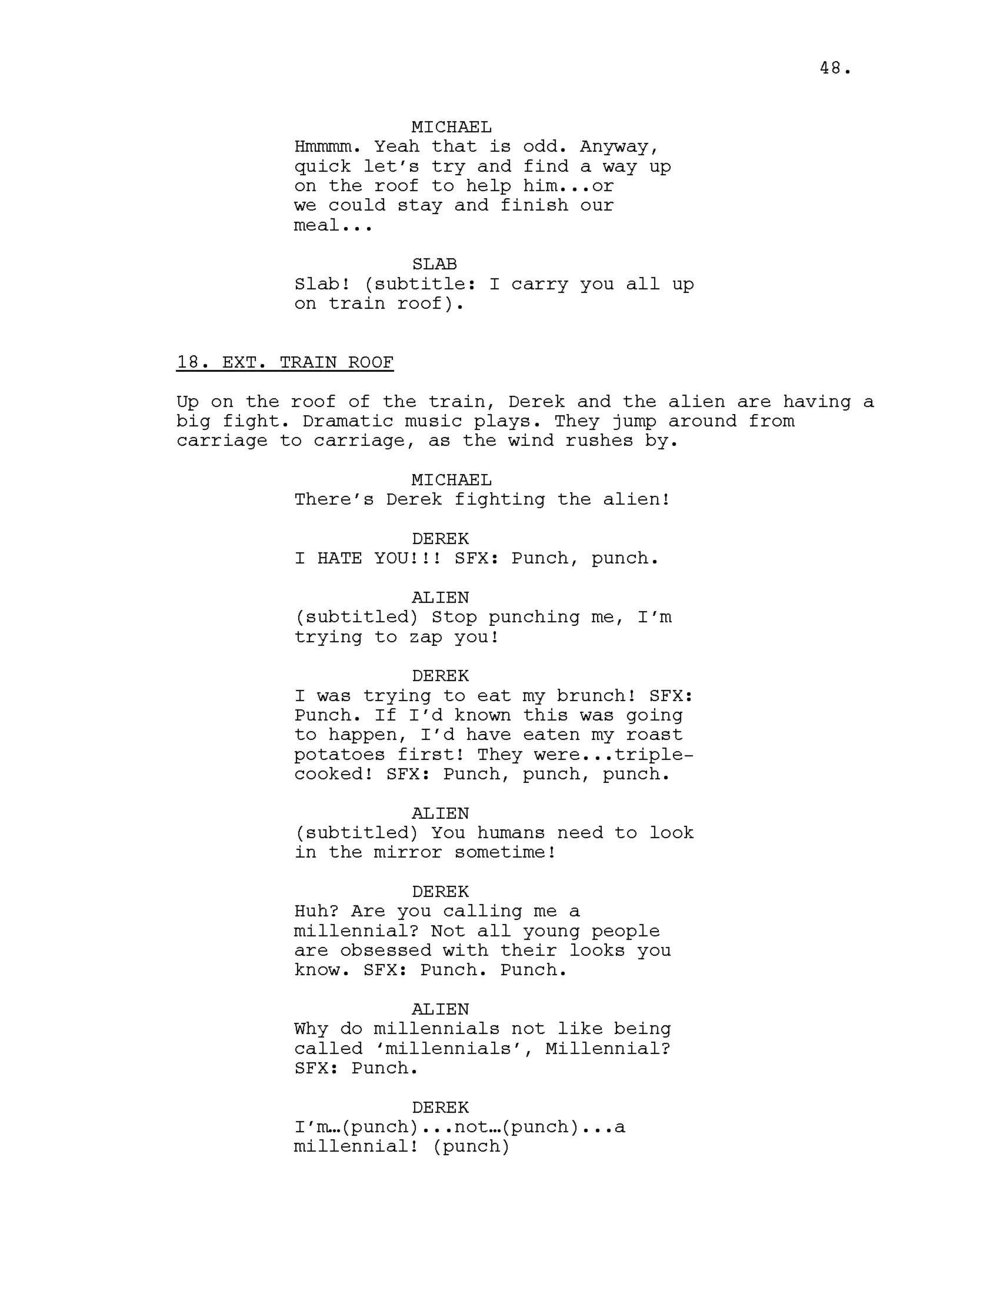 INVISIBLE WORLD SCRIPT_Page_049.jpg